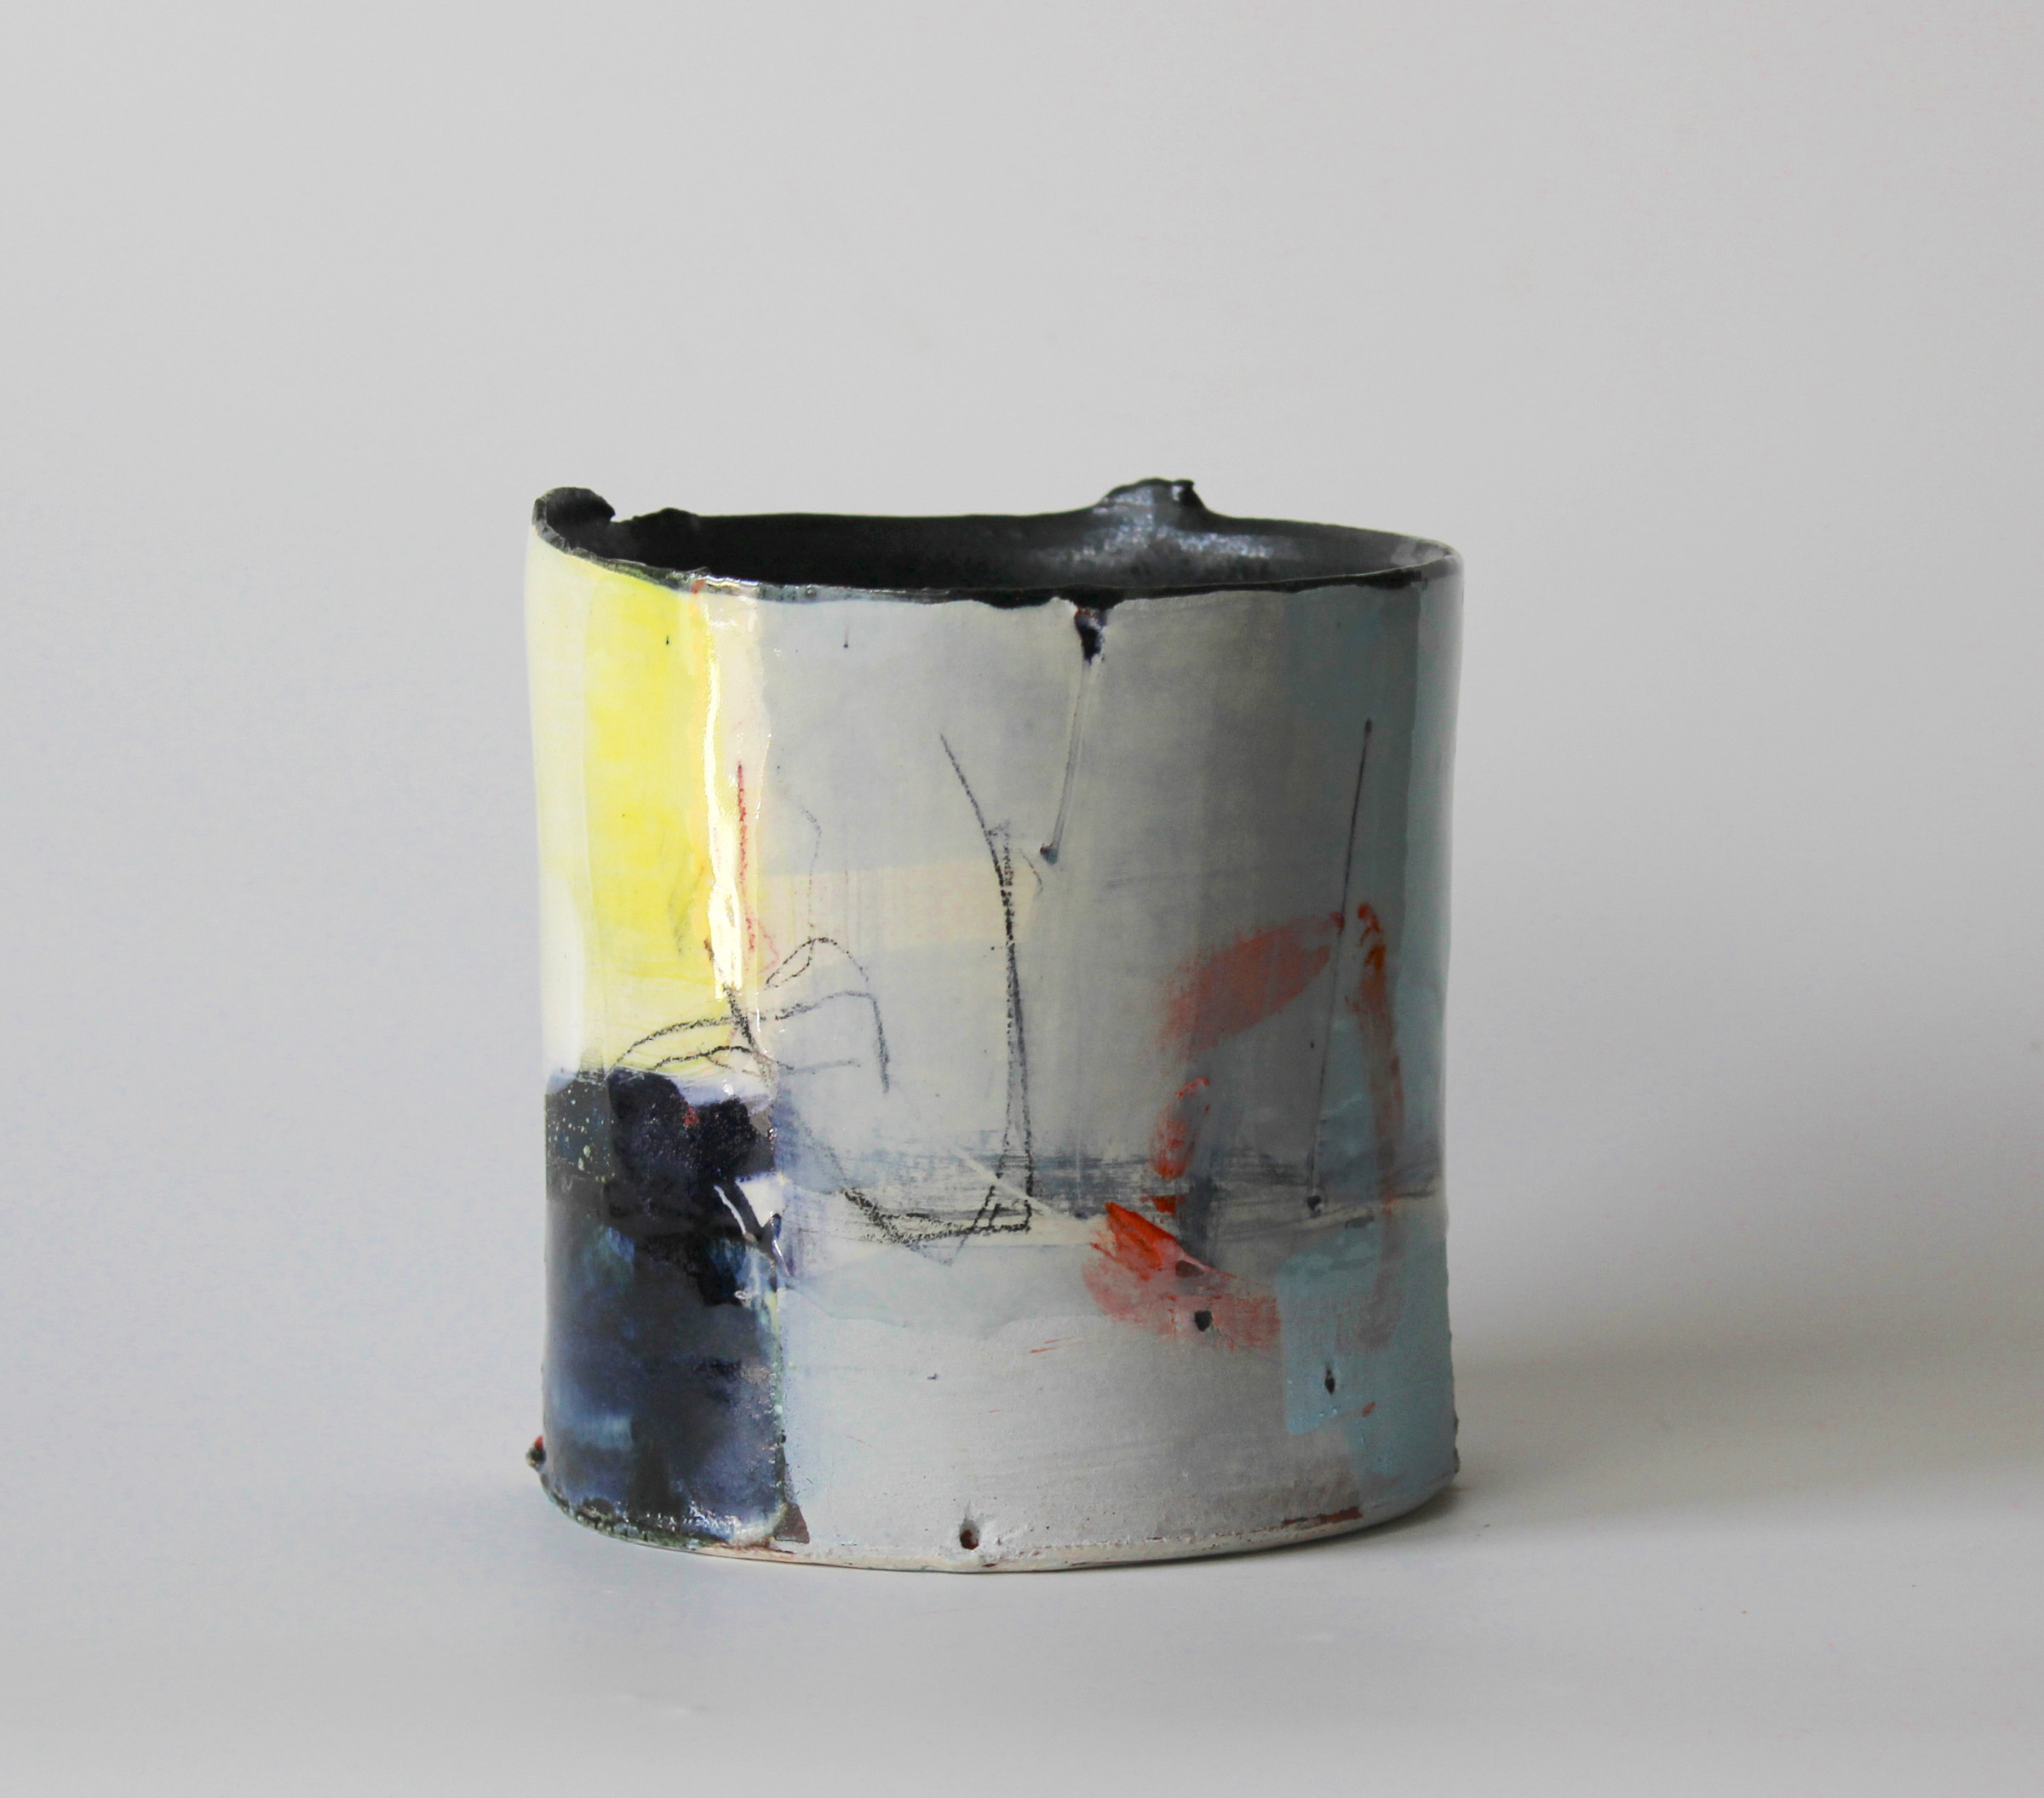 "<span class=""link fancybox-details-link""><a href=""/artists/34-barry-stedman/works/4157-barry-stedman-thrown-vessel-harbour-series-2017/"">View Detail Page</a></span><div class=""artist""><strong>Barry Stedman</strong></div> <div class=""title""><em>Thrown Vessel 'Harbour' Series</em>, 2017</div> <div class=""signed_and_dated"">signed by artist</div> <div class=""medium"">earthenware</div> <div class=""dimensions"">14 x 14 cm<br /> 5 1/2 x 5 1/2 inches</div><div class=""copyright_line"">OwnArt: £ 30 x 10 Months, 0% APR</div>"